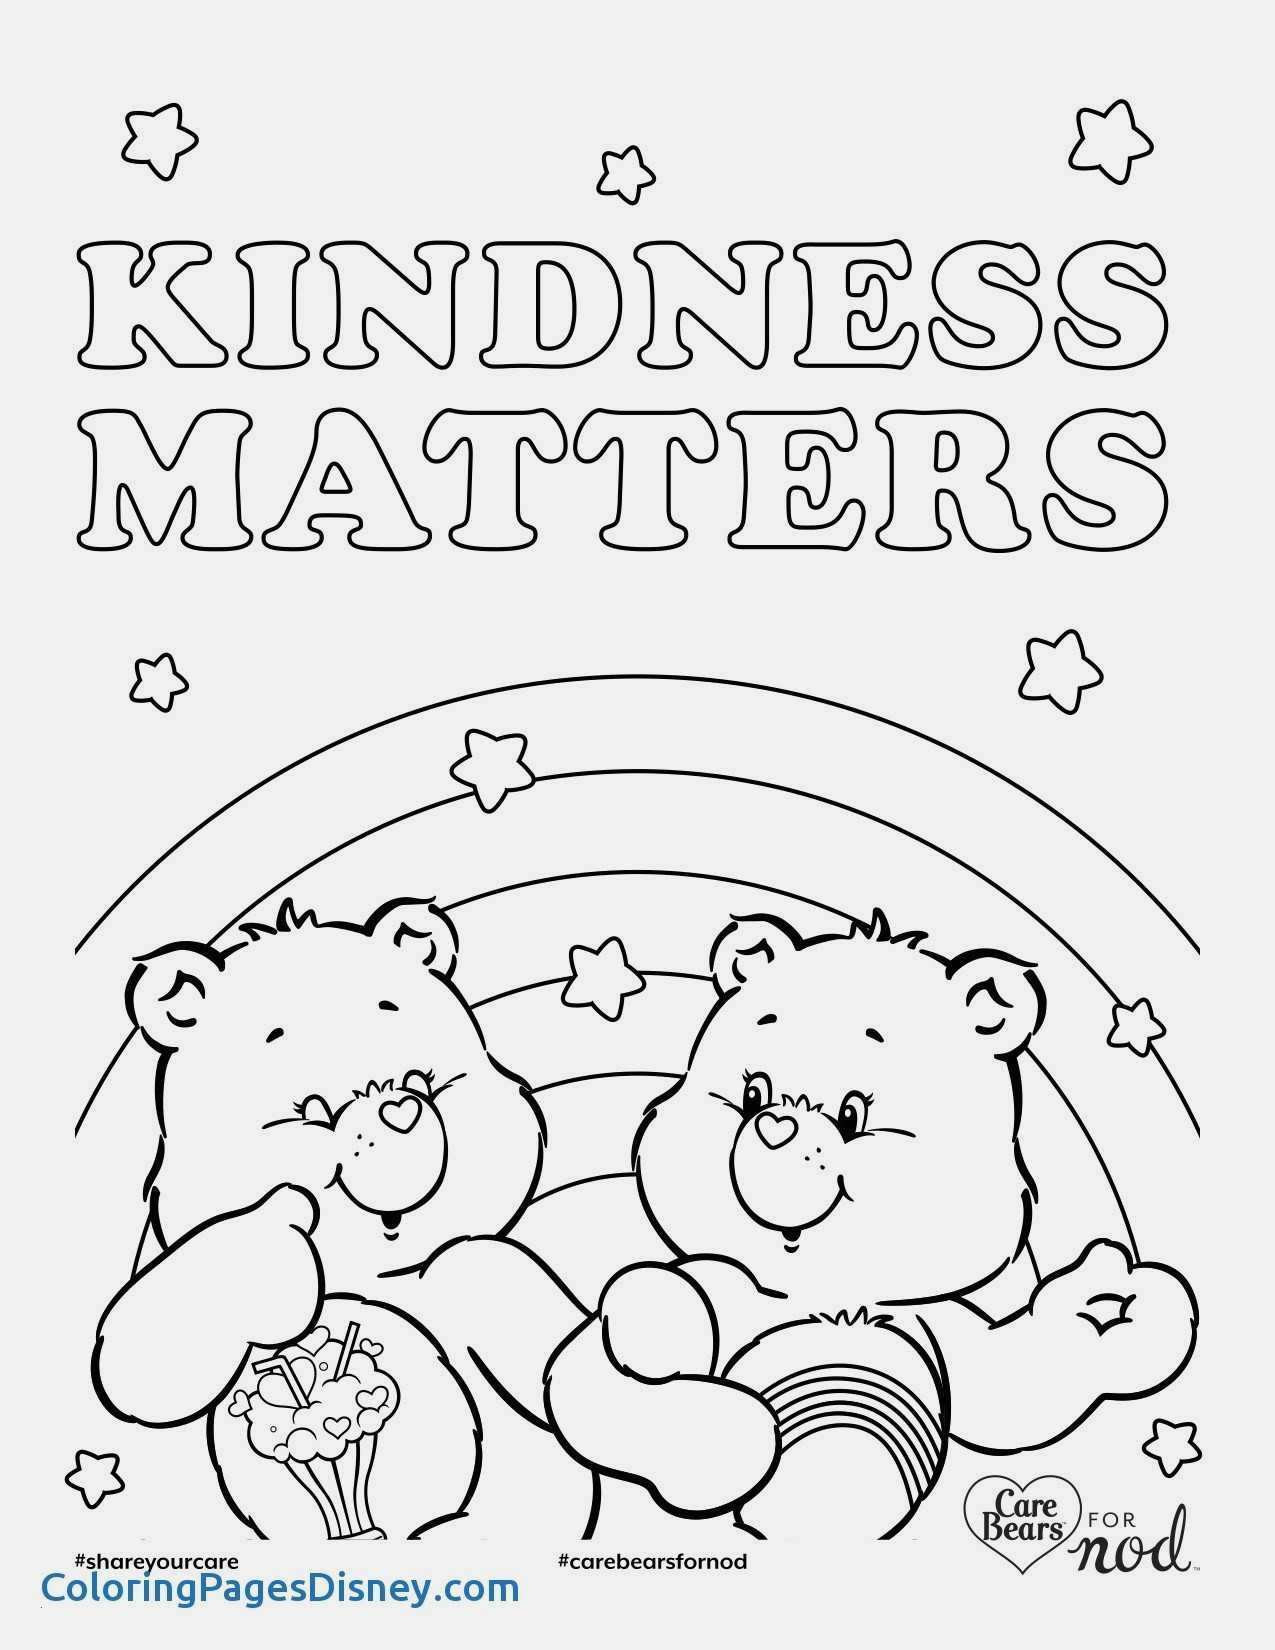 52 Unique Free Printable Pajama Coloring Pages | Brainstormchi - Free Printable Pajama Coloring Pages